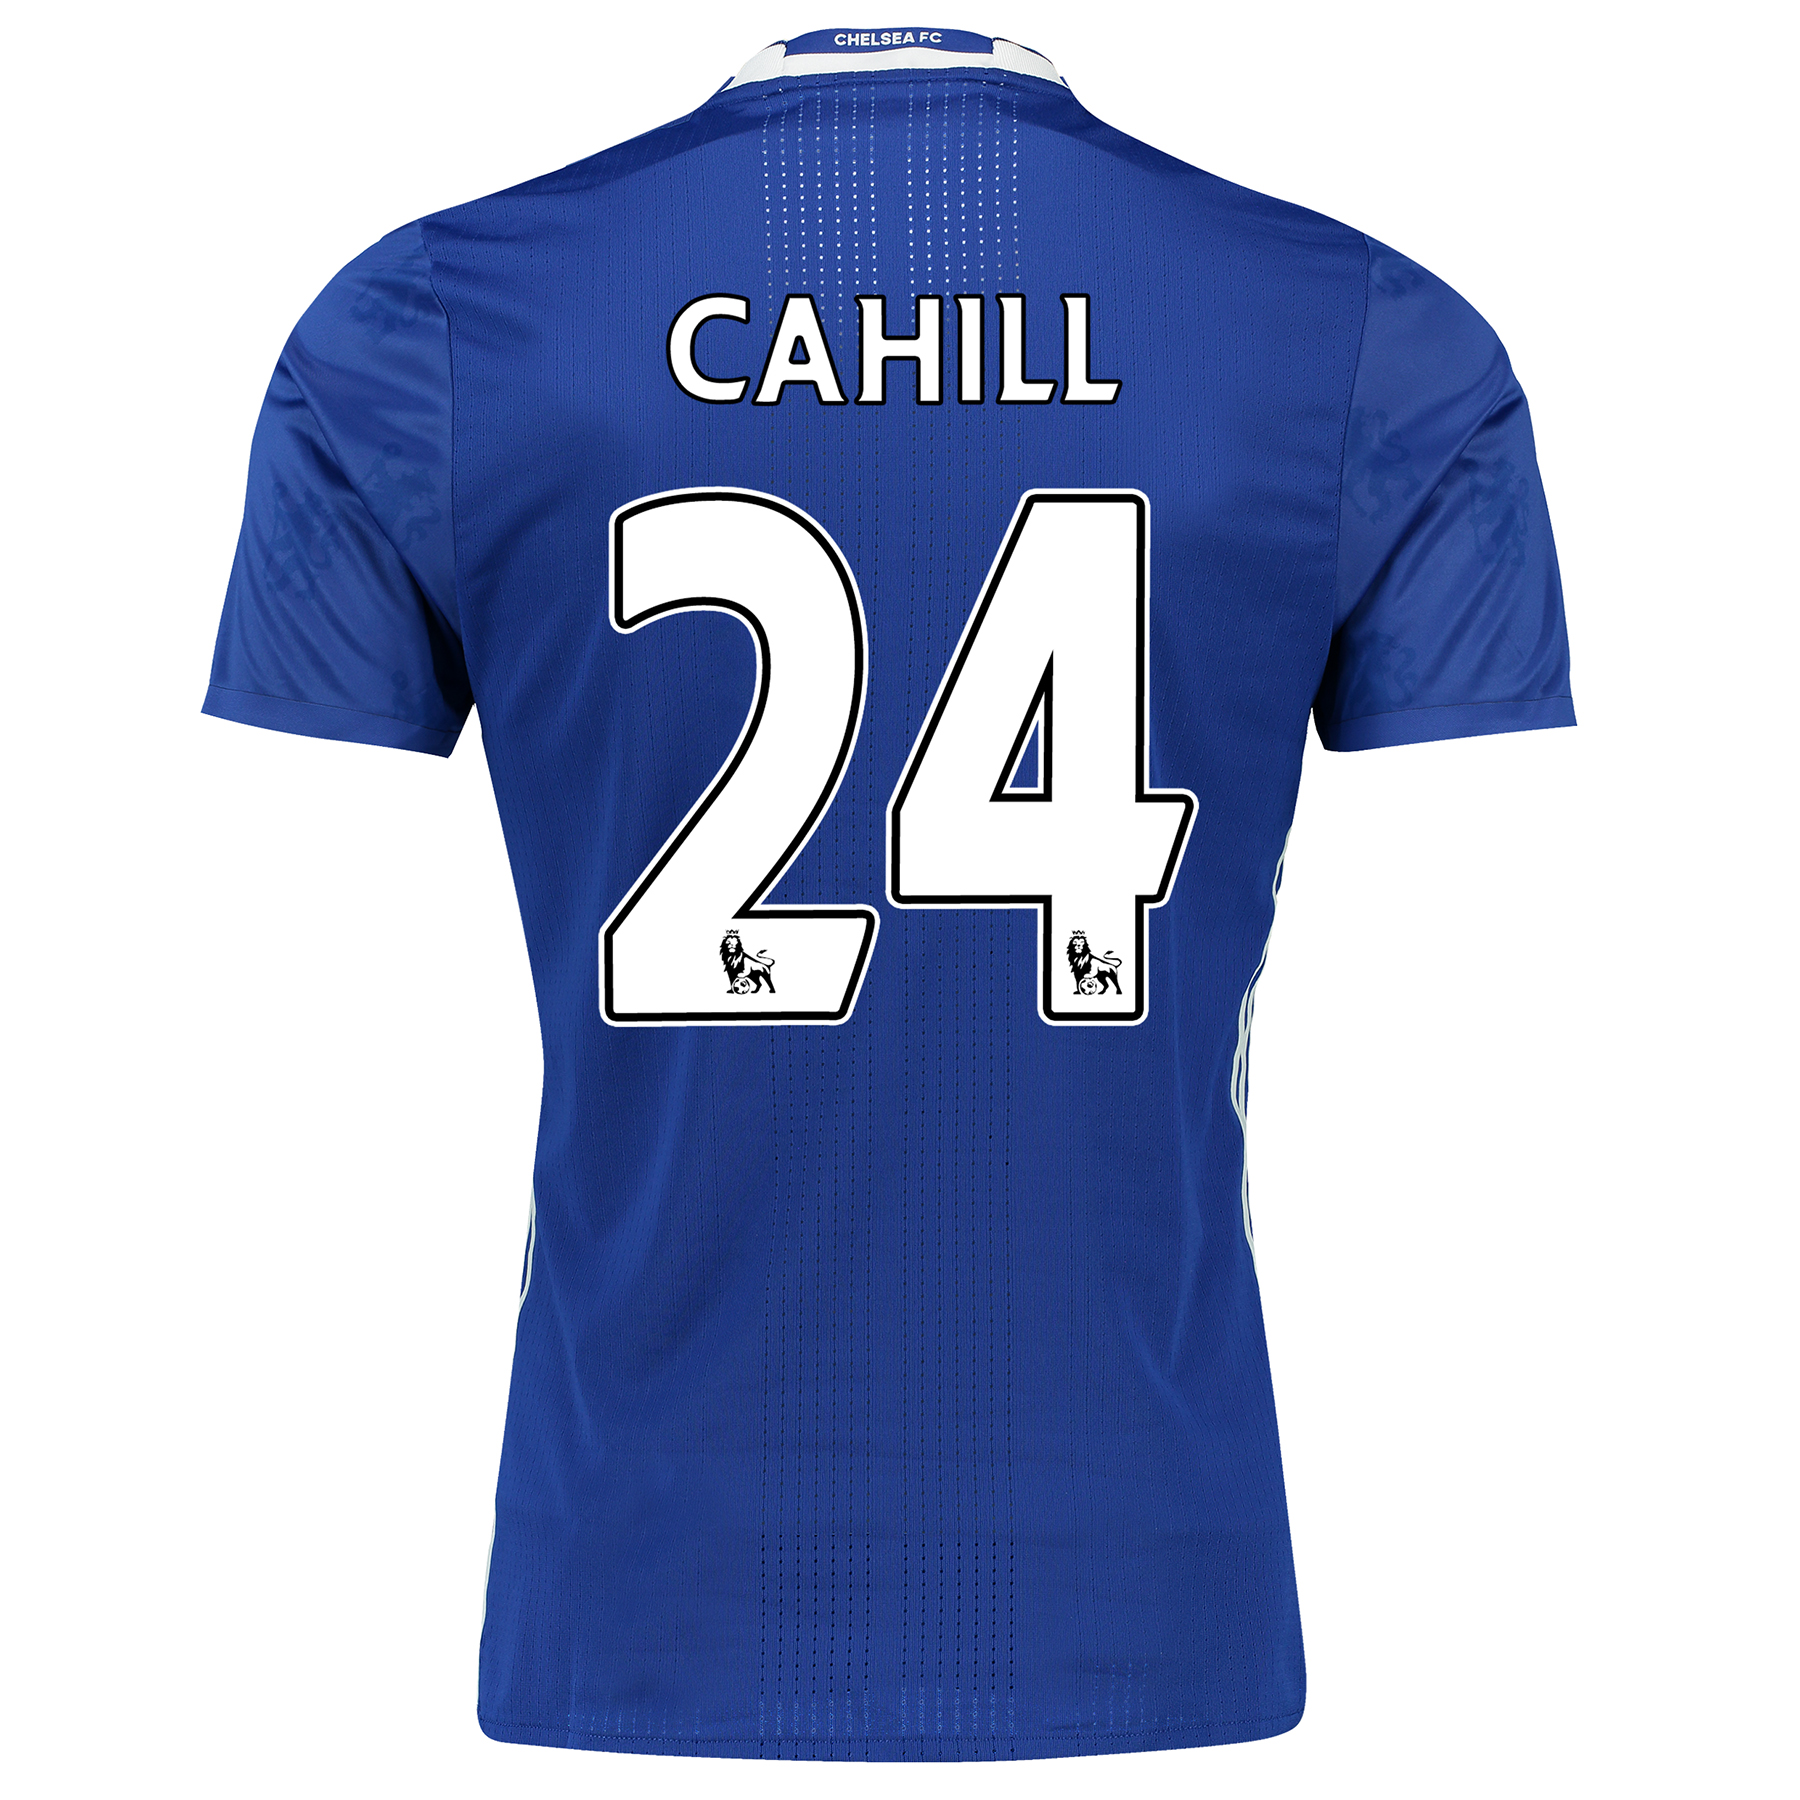 Shop Cahill Printed Shirts